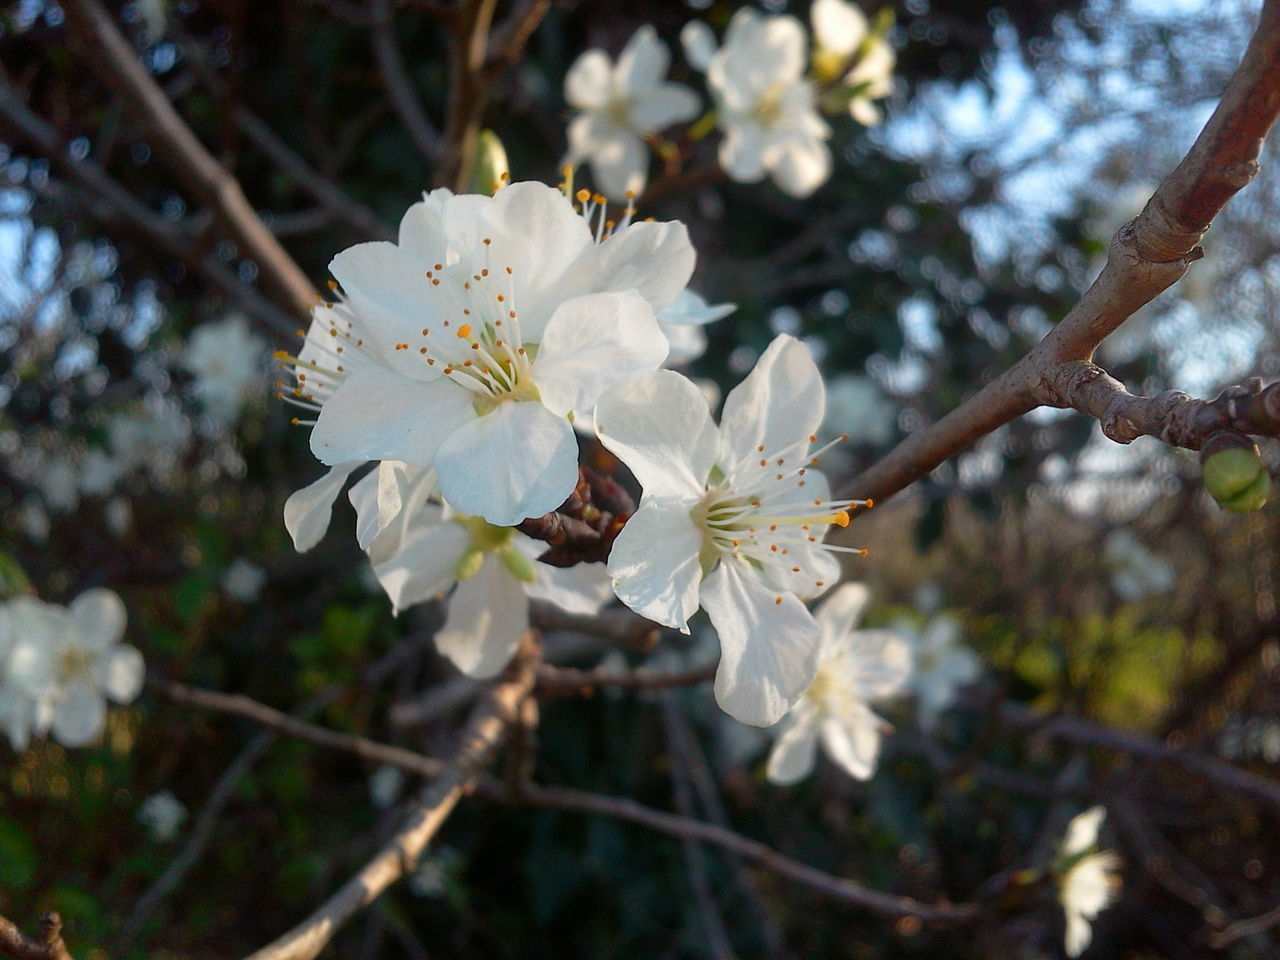 flower, white color, freshness, growth, fragility, petal, focus on foreground, tree, branch, flower head, beauty in nature, close-up, nature, blossom, blooming, cherry blossom, in bloom, white, pollen, twig, stamen, outdoors, day, cherry tree, no people, botany, plant, selective focus, softness